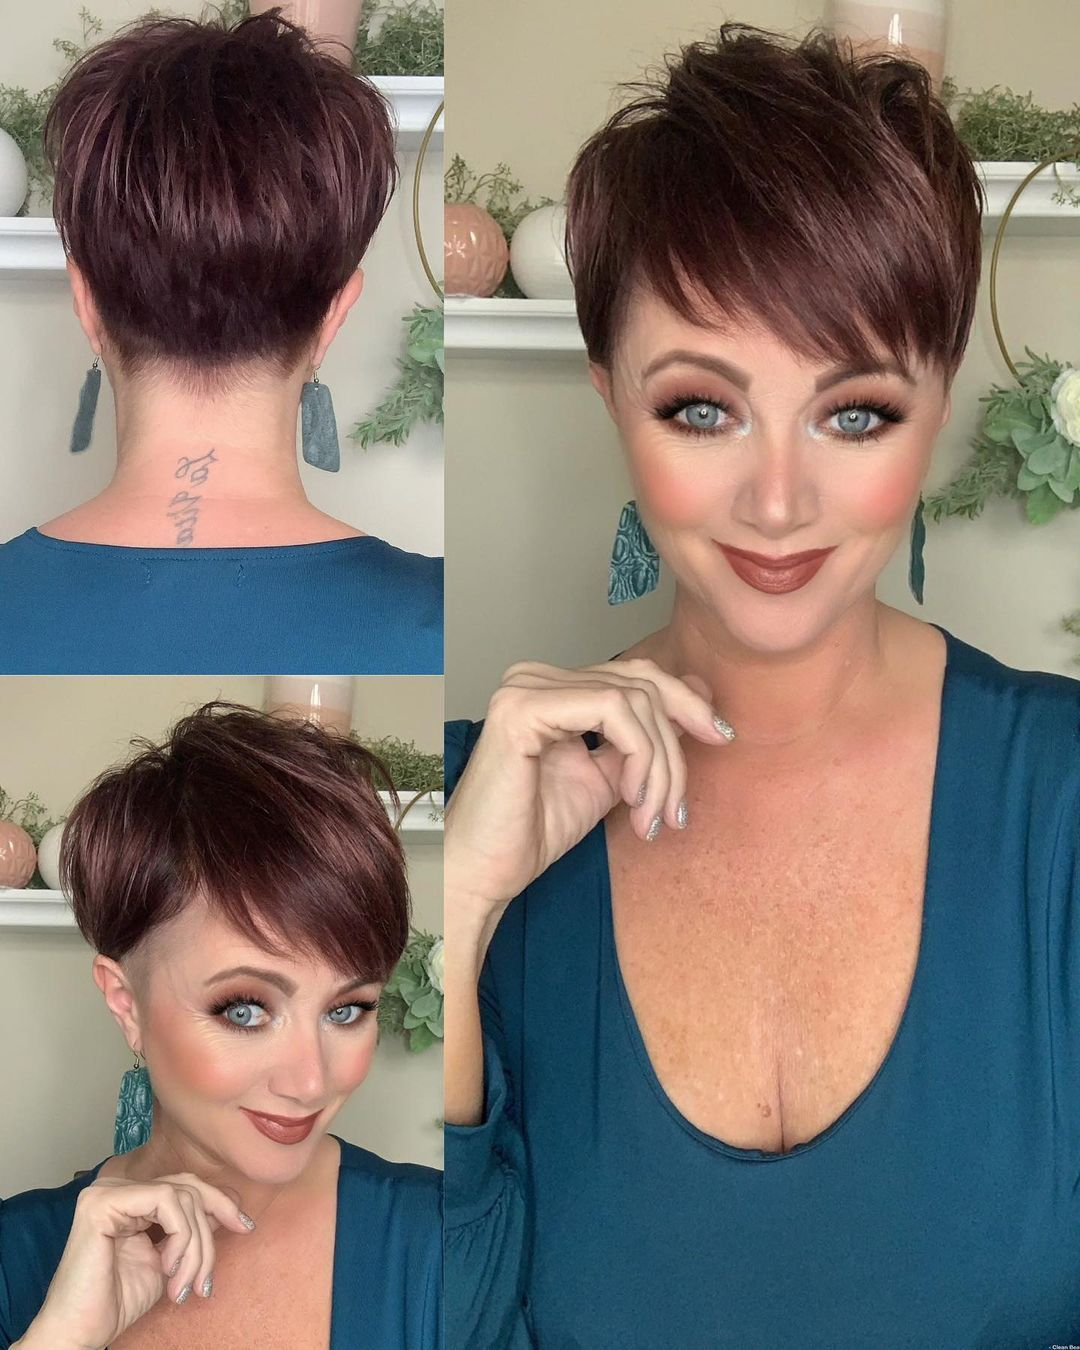 Latest Short Hairstyles for Women Over 50 (Updated 2021) 242972524b493f7f635d1115b7f0c123